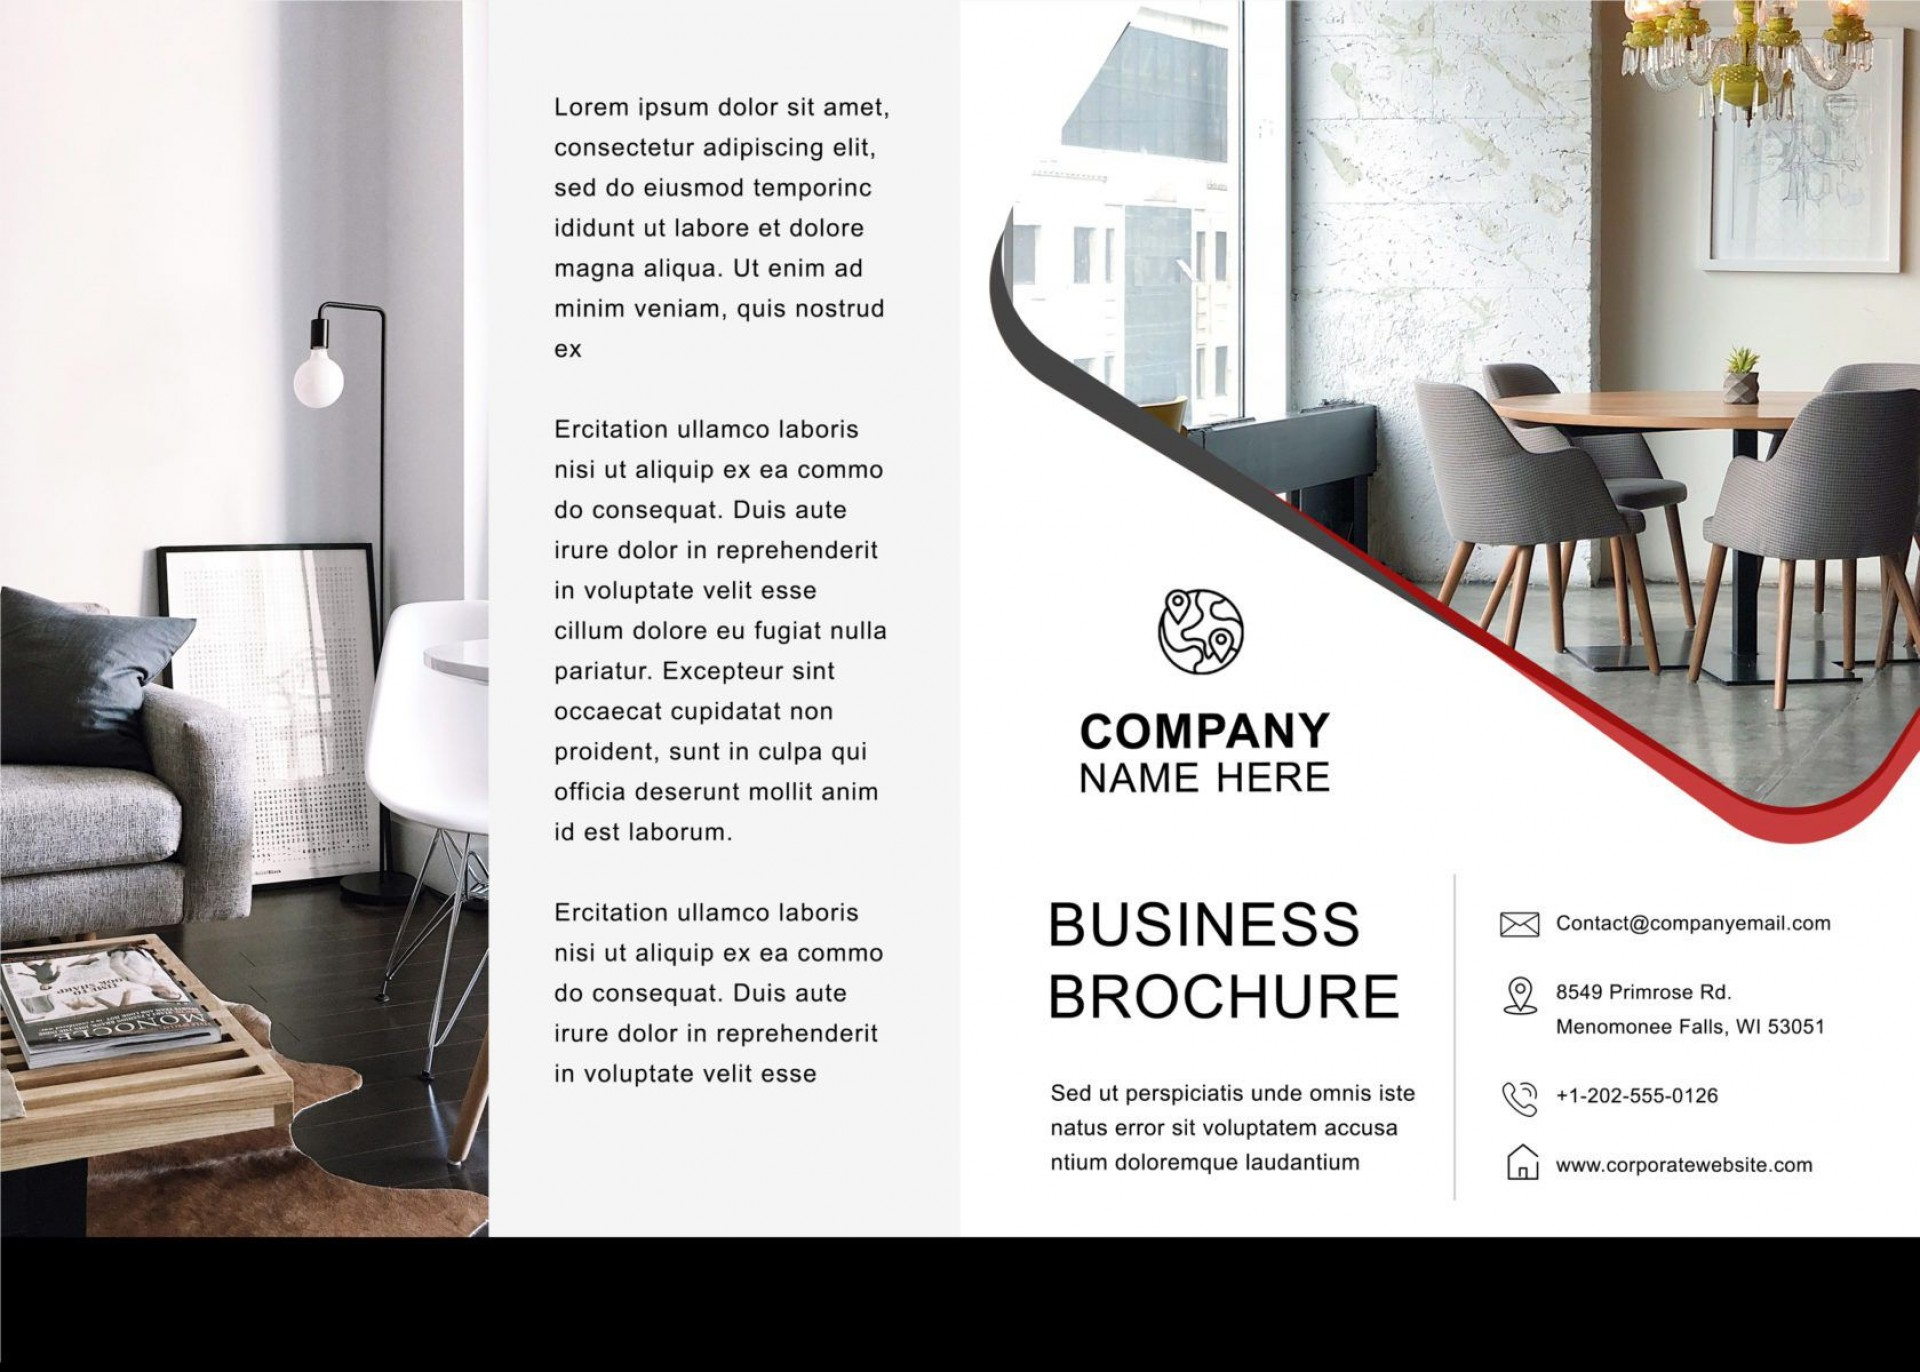 004 Outstanding Brochure Template Free Download Photo  Microsoft Publisher Corporate Psd For Adobe Illustrator1920